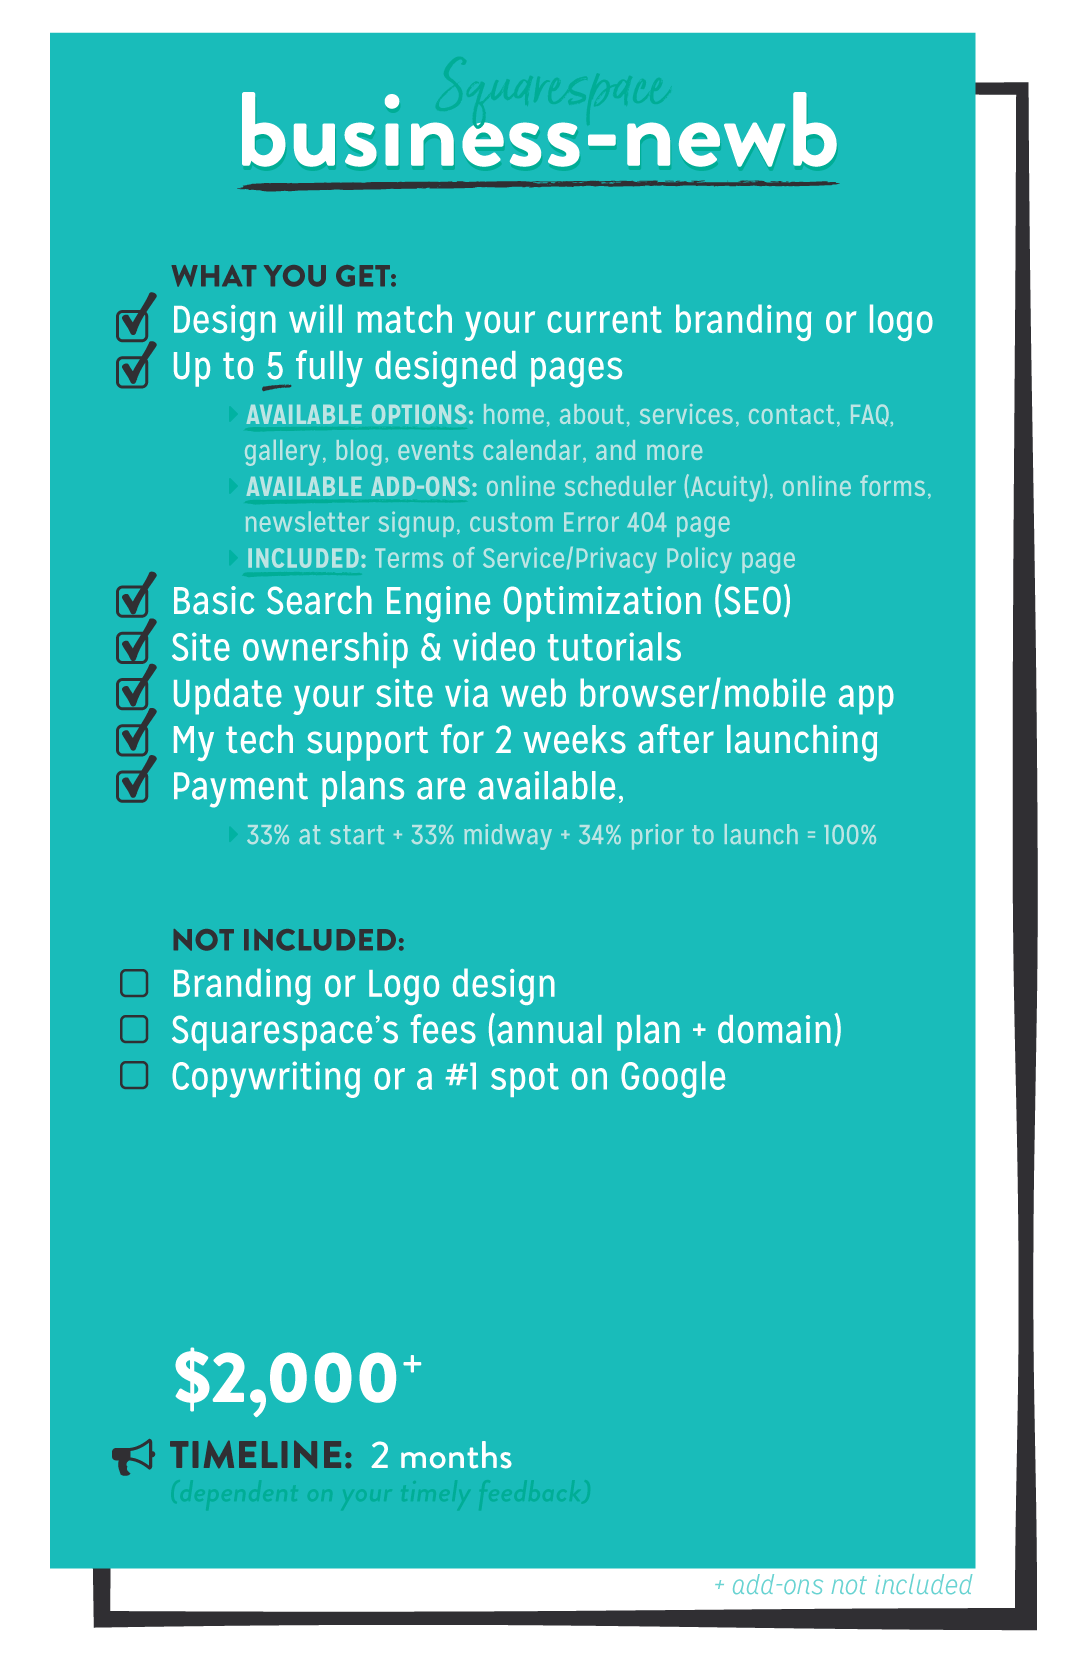 S1862_SquarespaceDesignPackage_Business-Newb.png